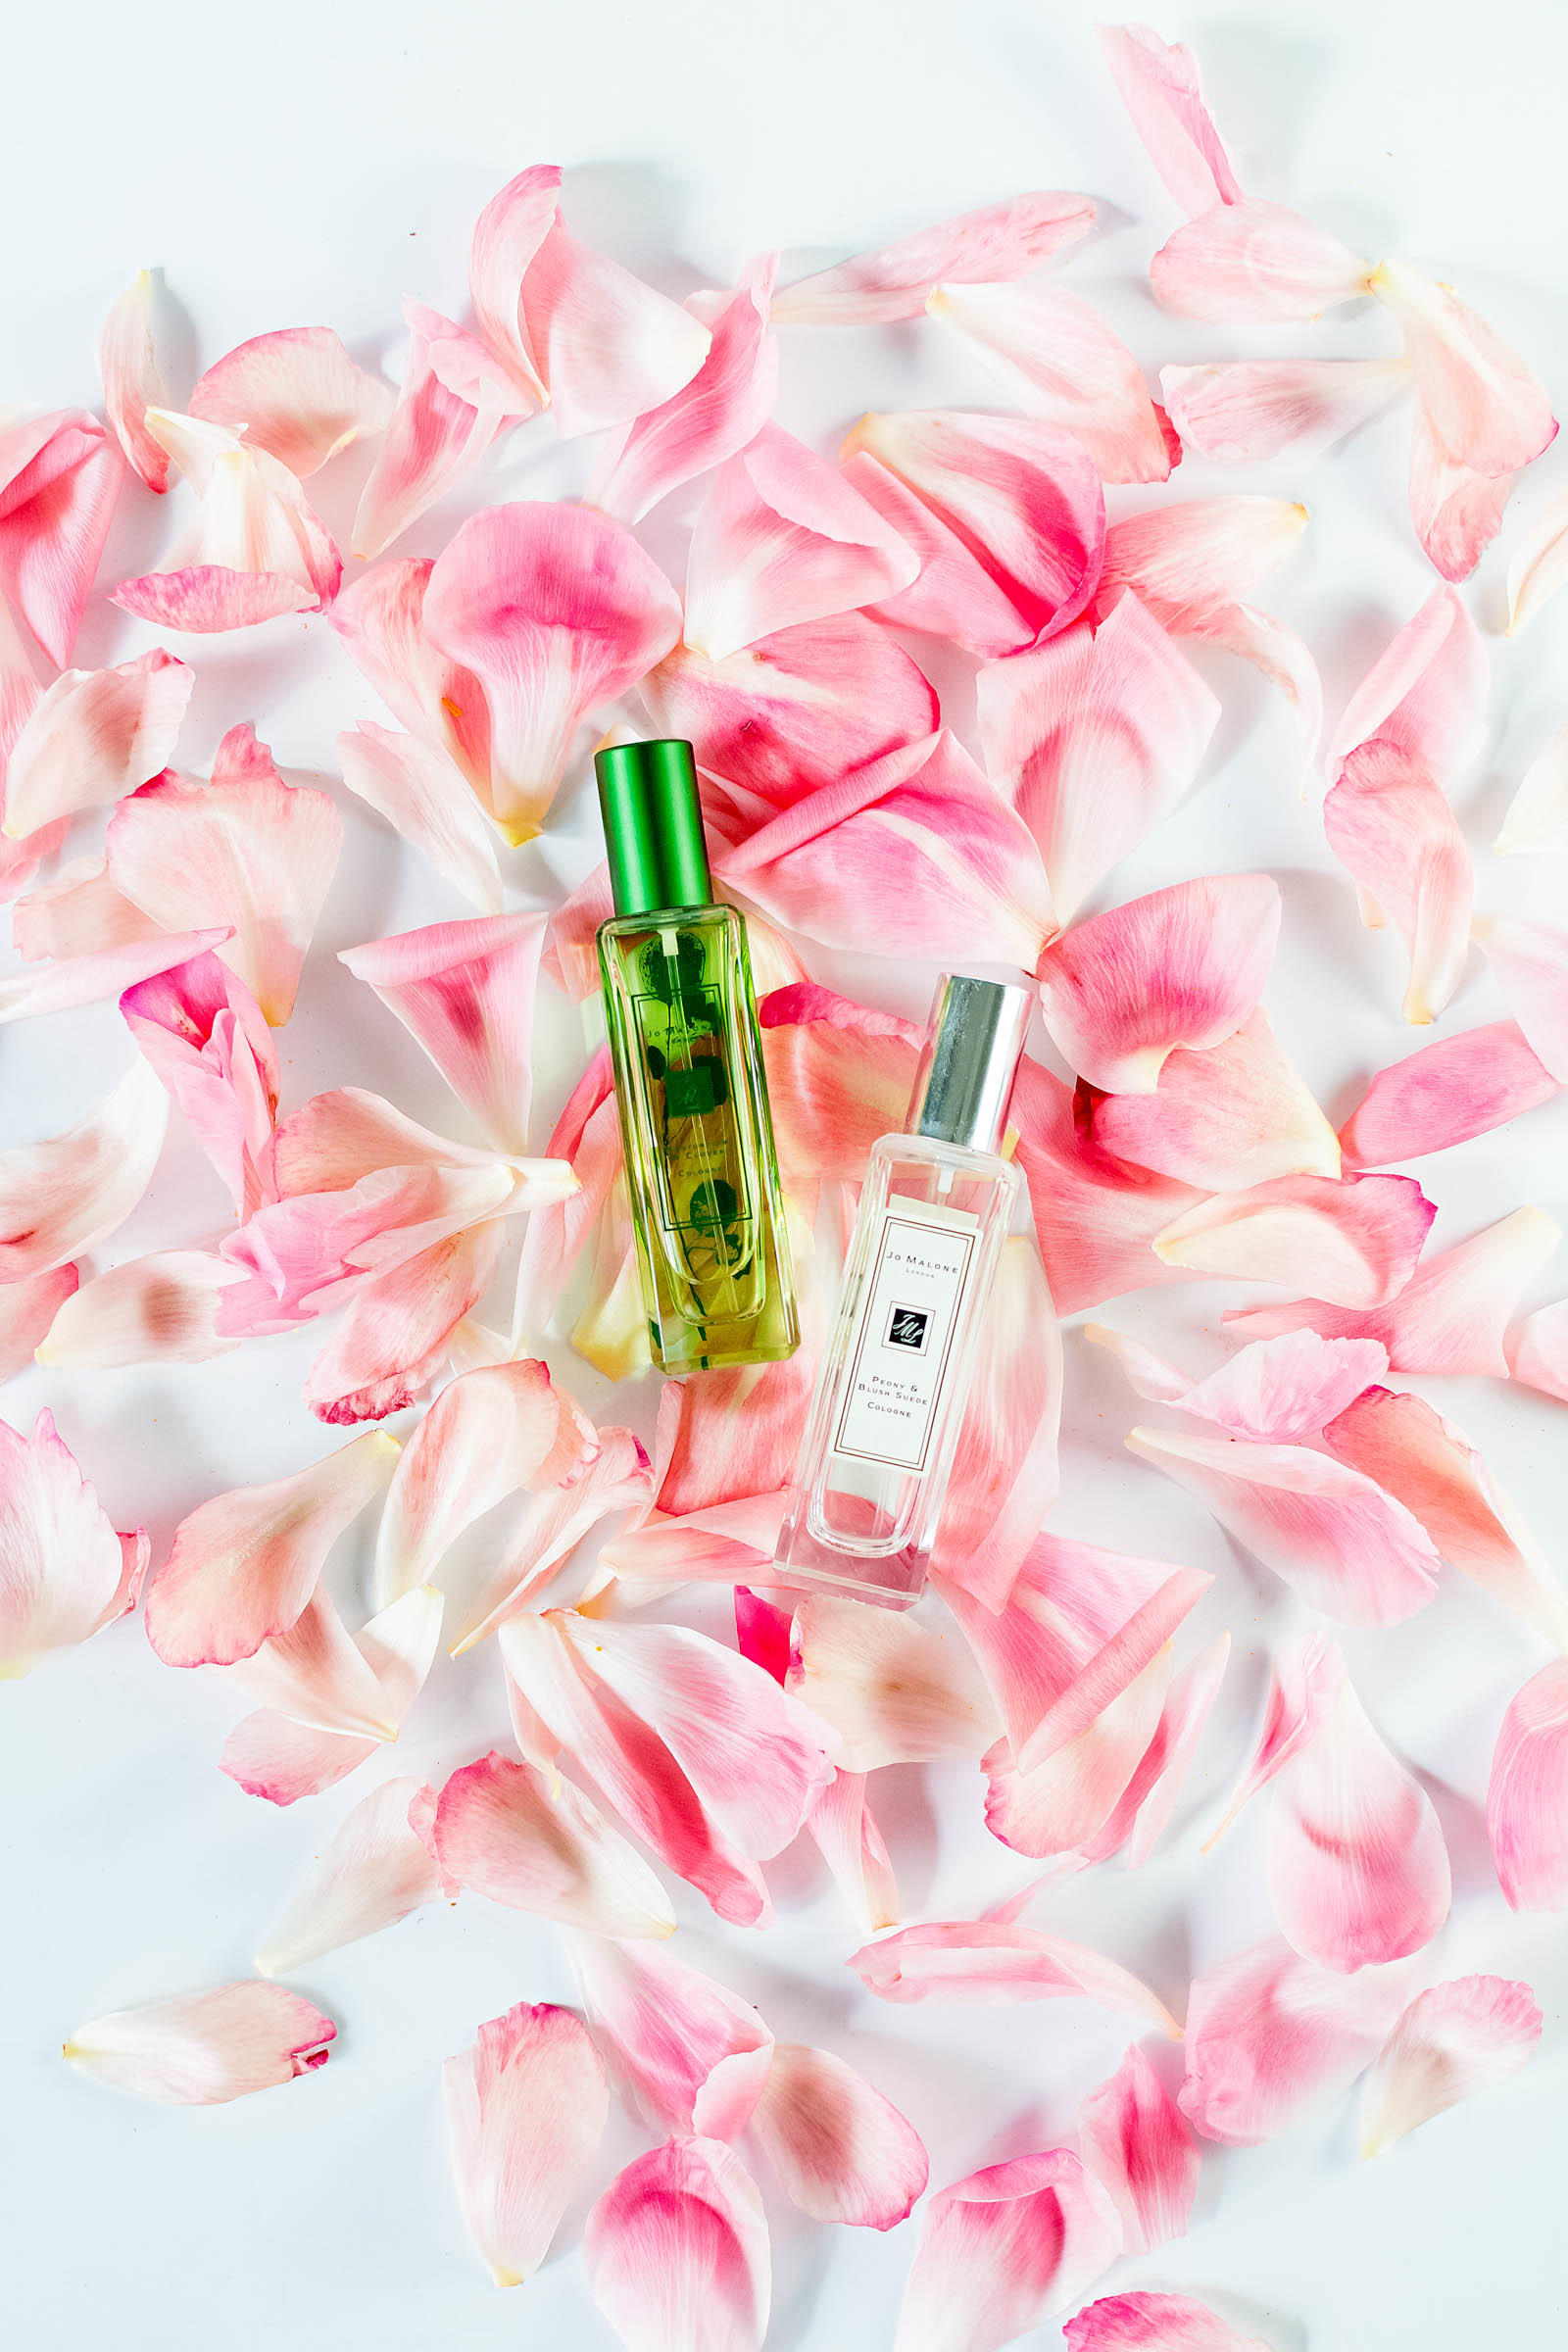 Obsessing Over More Of My Favorite Jo Malone Combinations Sed Bona Nashi Cologne Fragrance